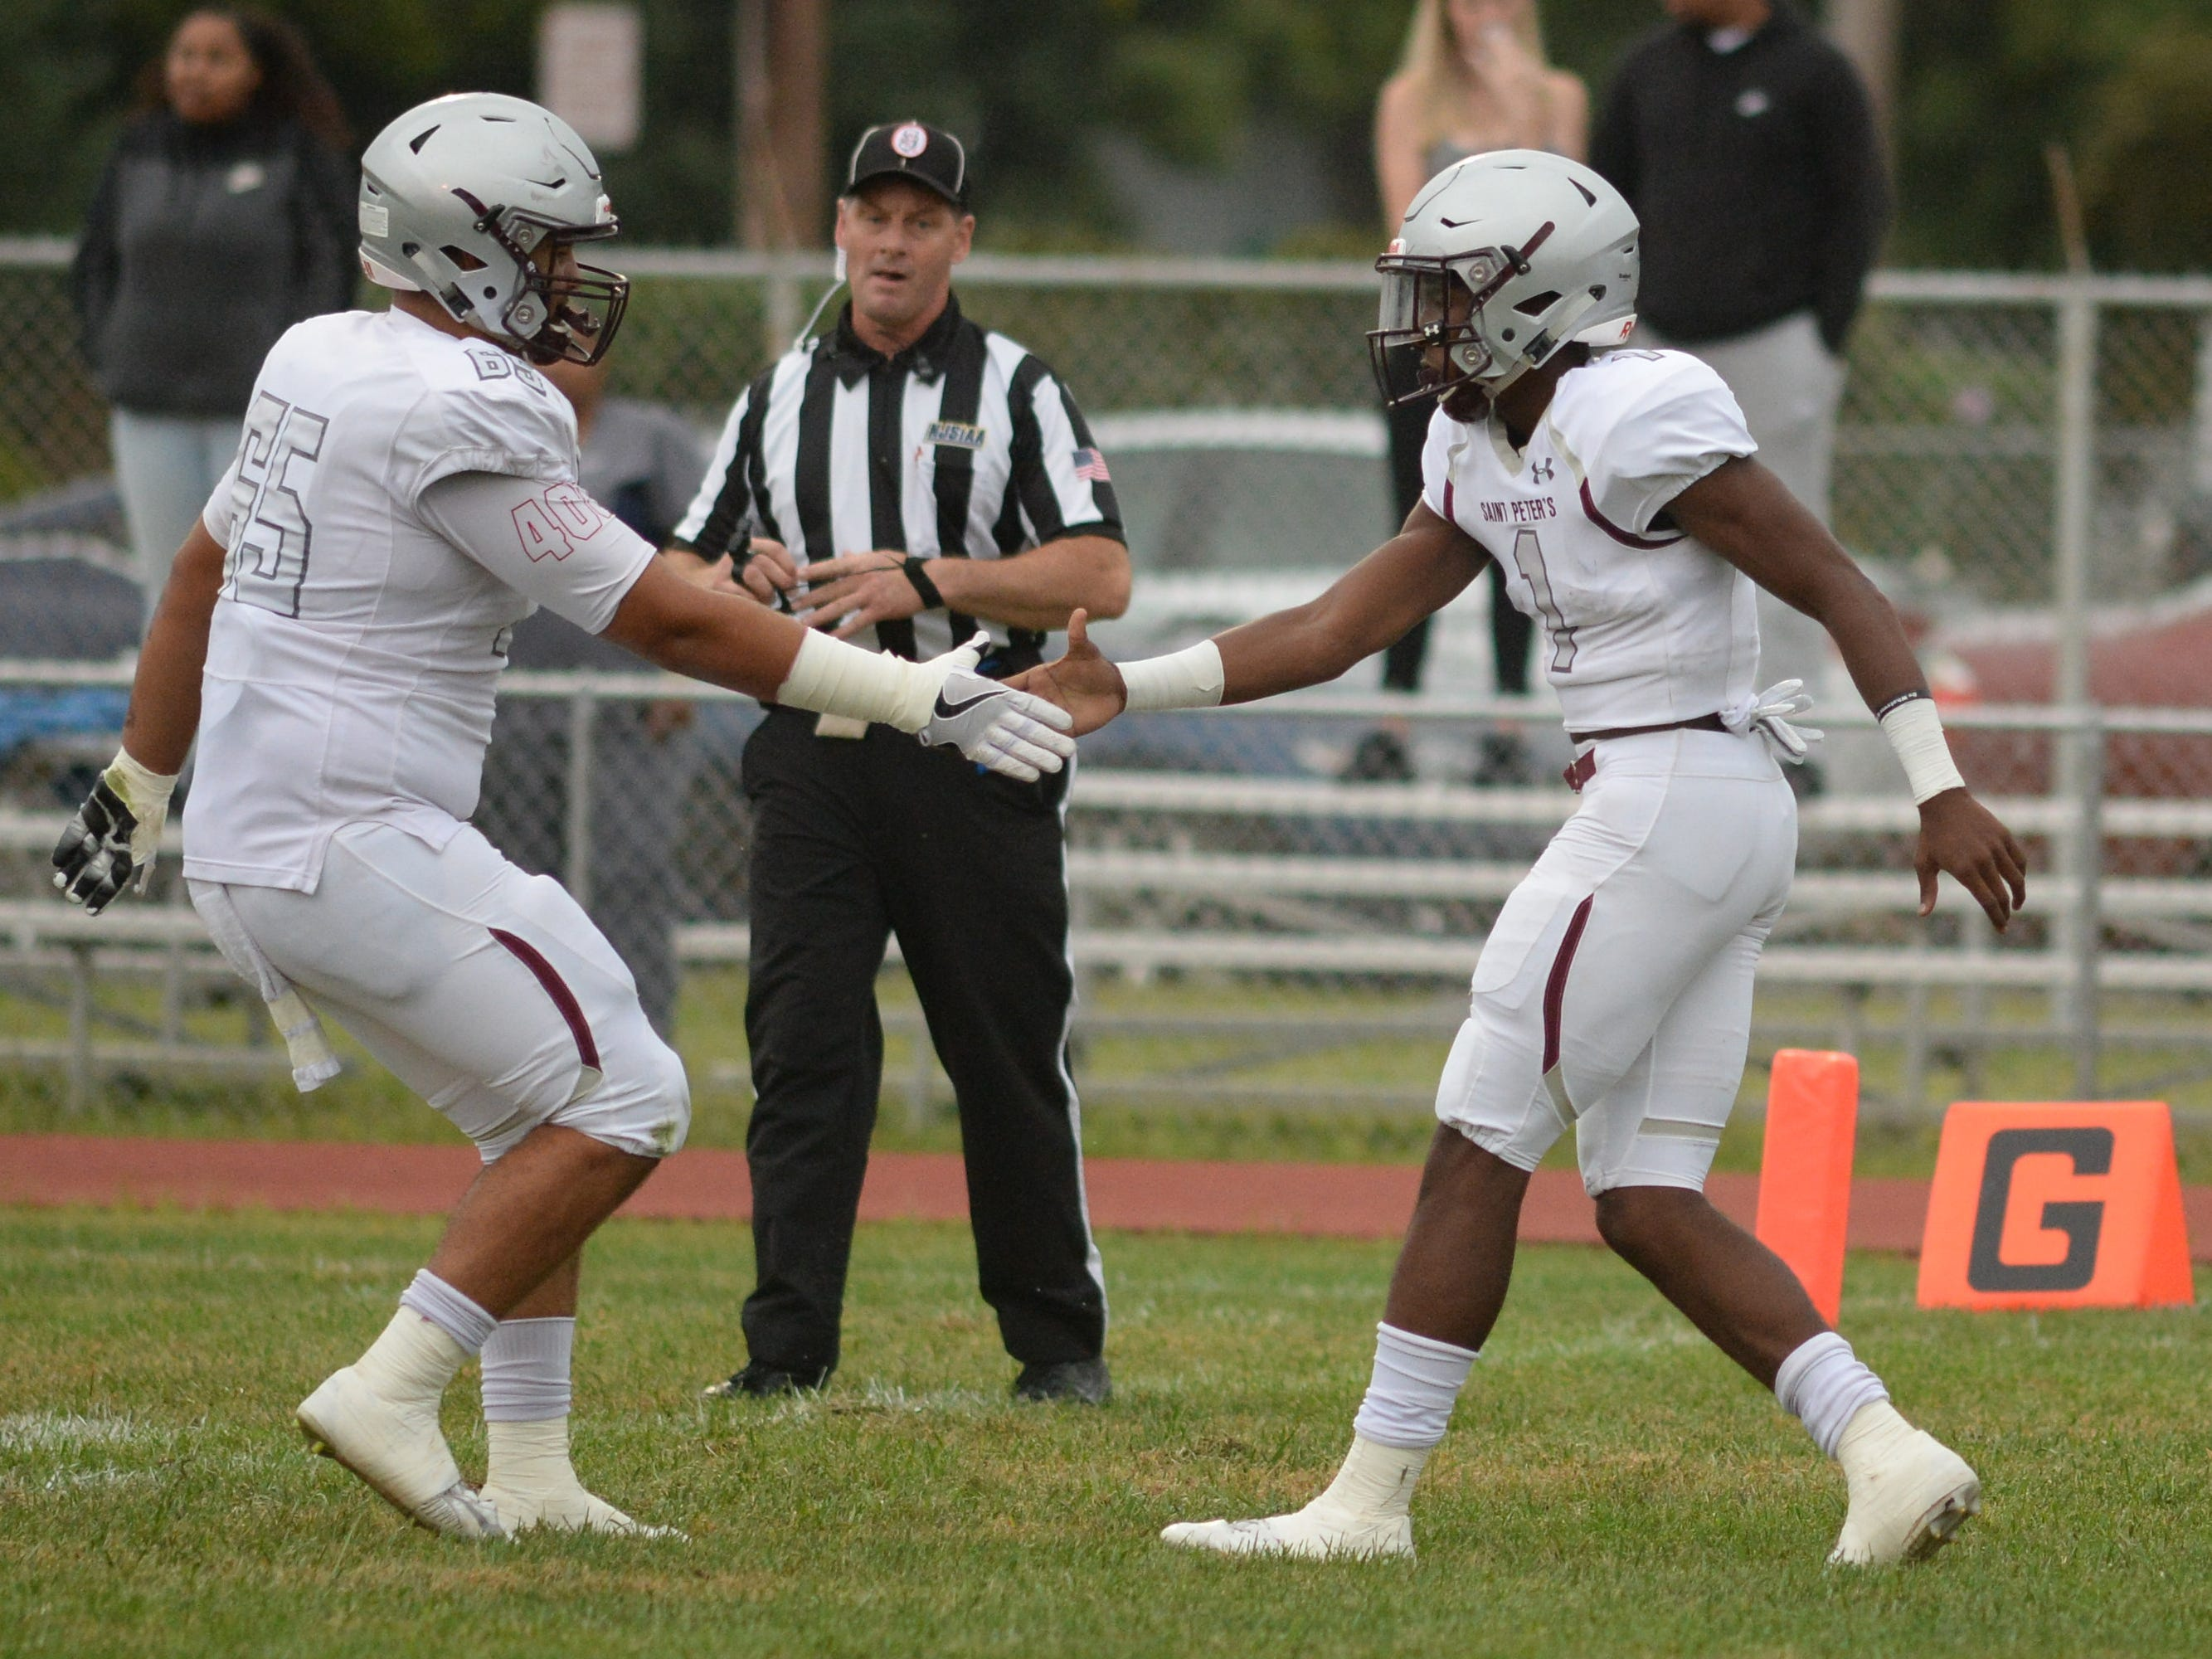 St. Peter's Prep's Ayir Asante celebrates with a teammate after catching a touchdown pass during the season opening football game against Millville at Millville Memorial High School, Friday, Aug. 31, 2018.